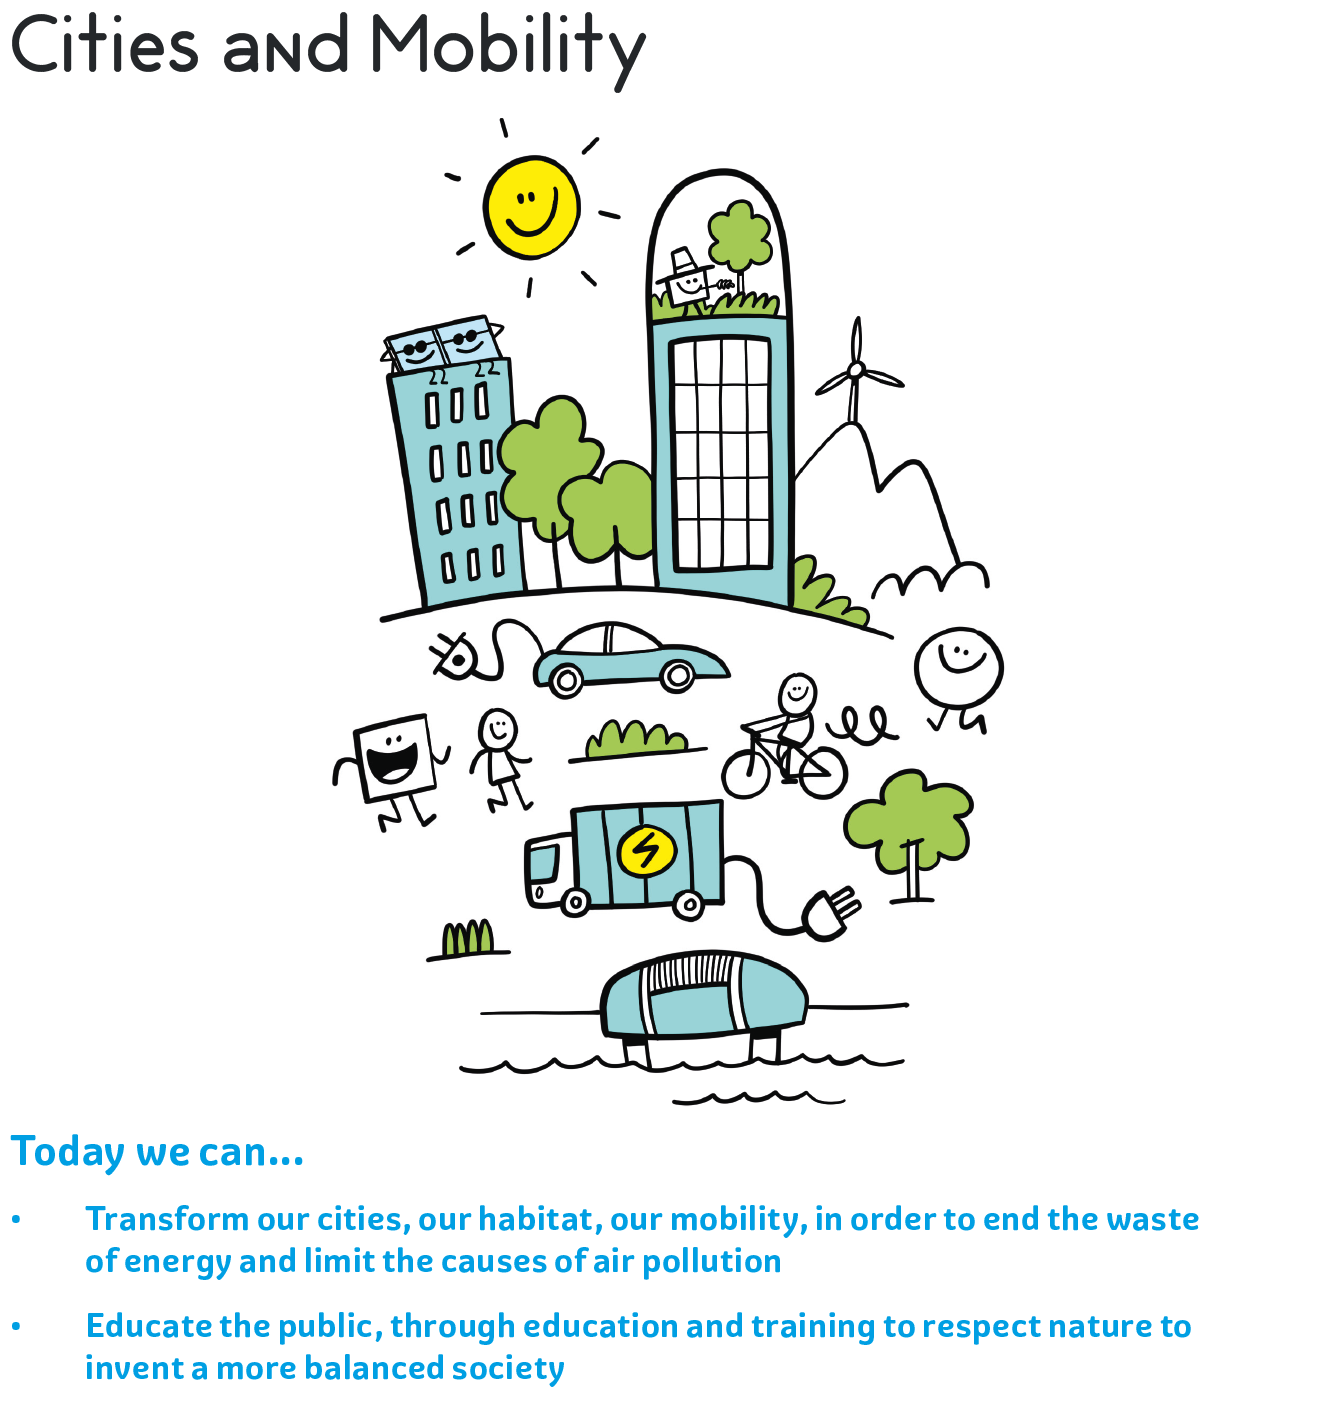 Cities and mobility